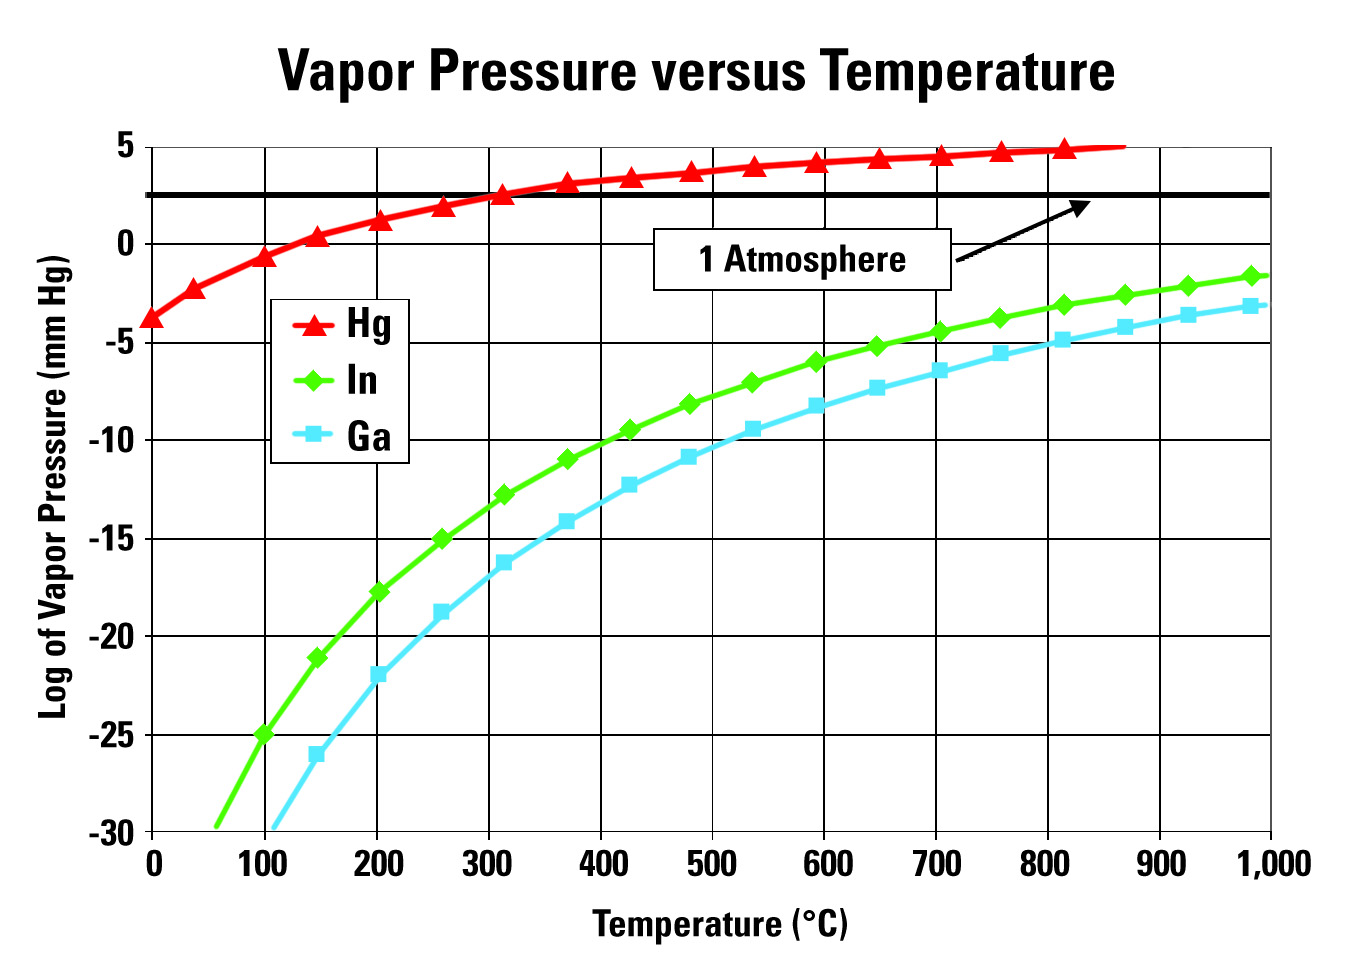 Chart of the Vapor Pressure versus Temperature